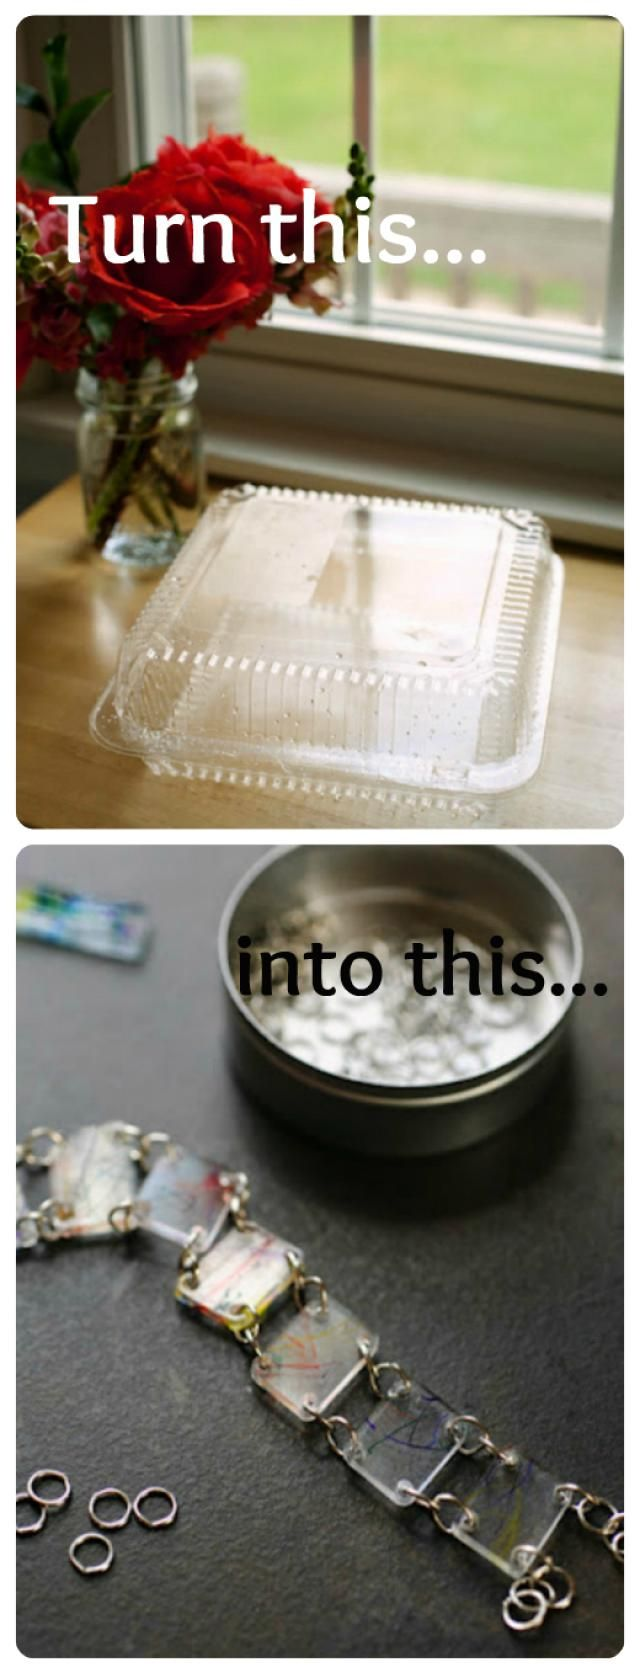 Amazing Shrink Plastic Art Projects and Tutorials: DIY Upcycle Food Containers to Make Shrink Plastic